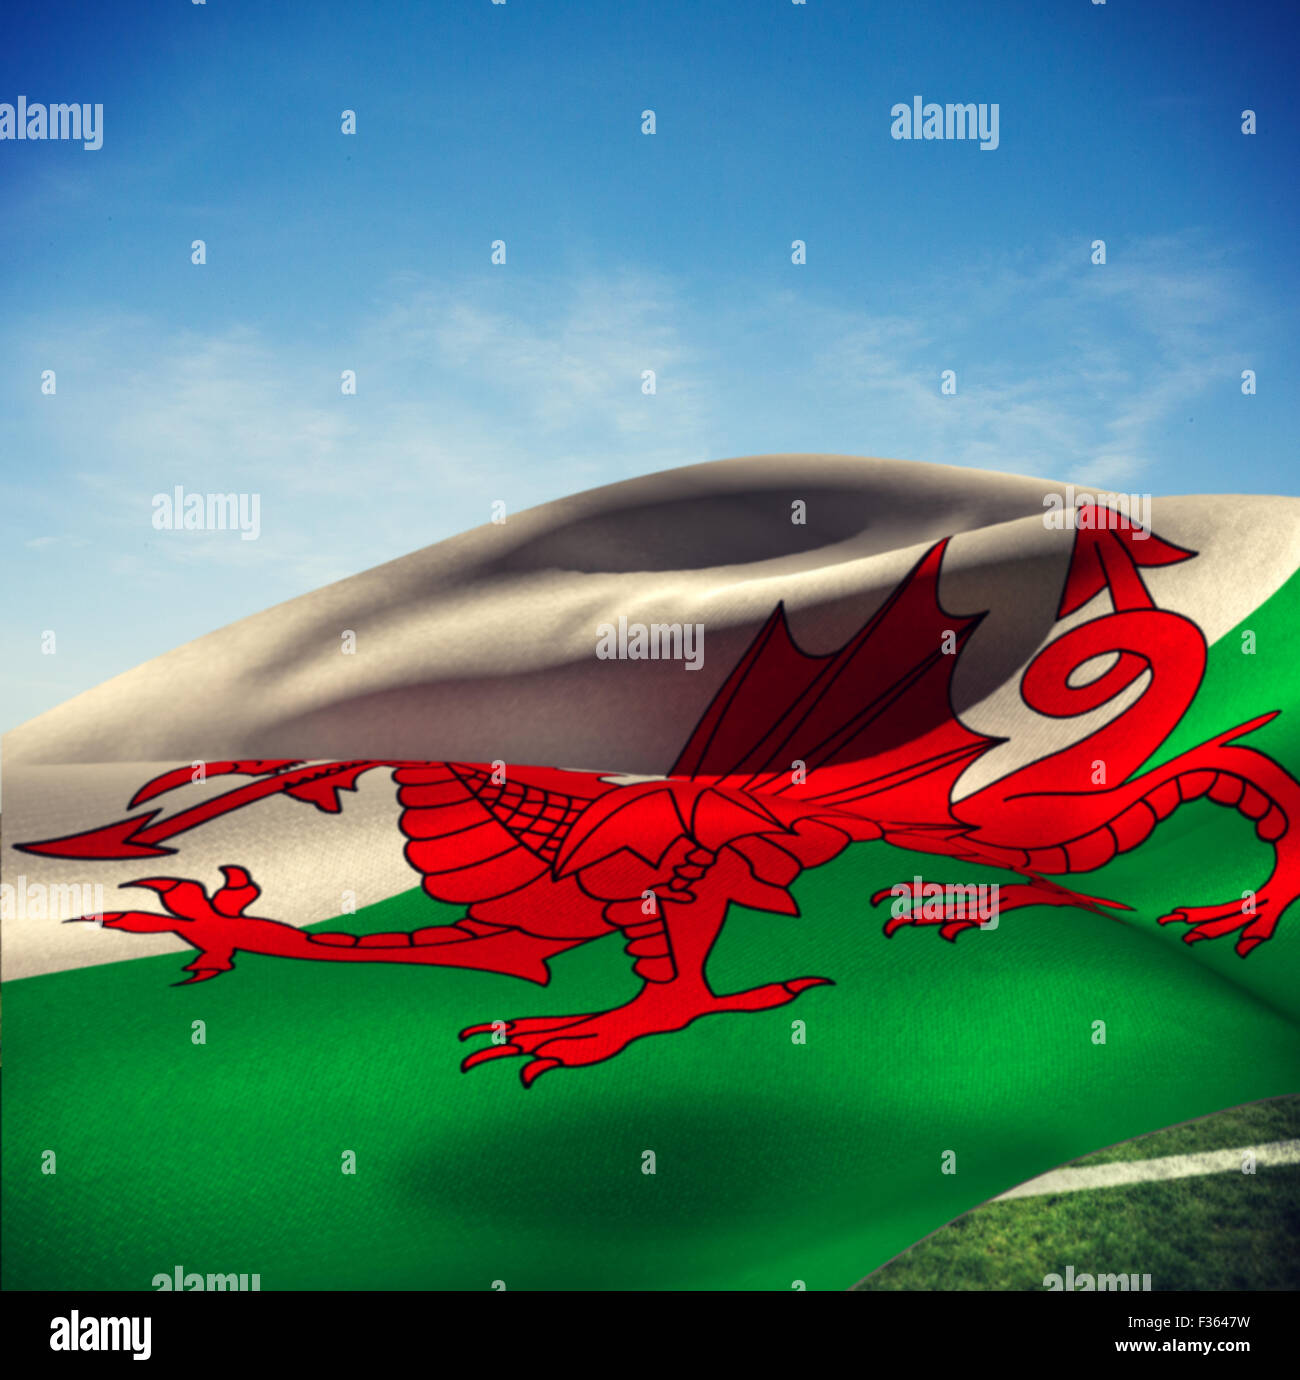 Composite image of waving flag of wales - Stock Image